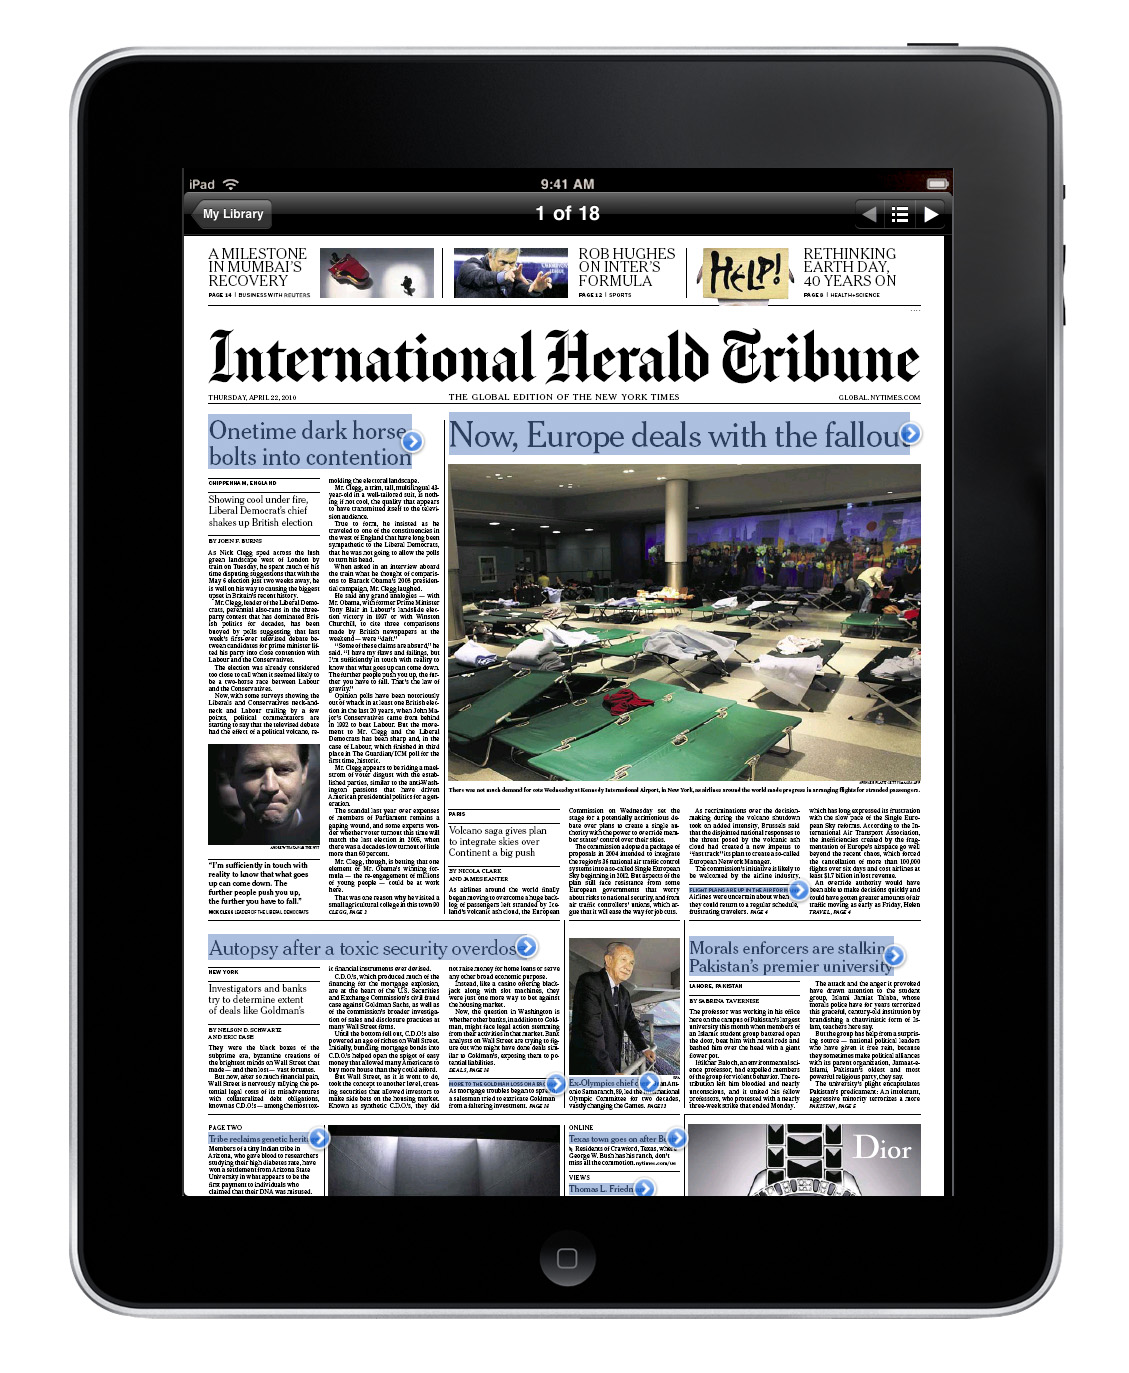 Some consider the iPad the modern newspaper